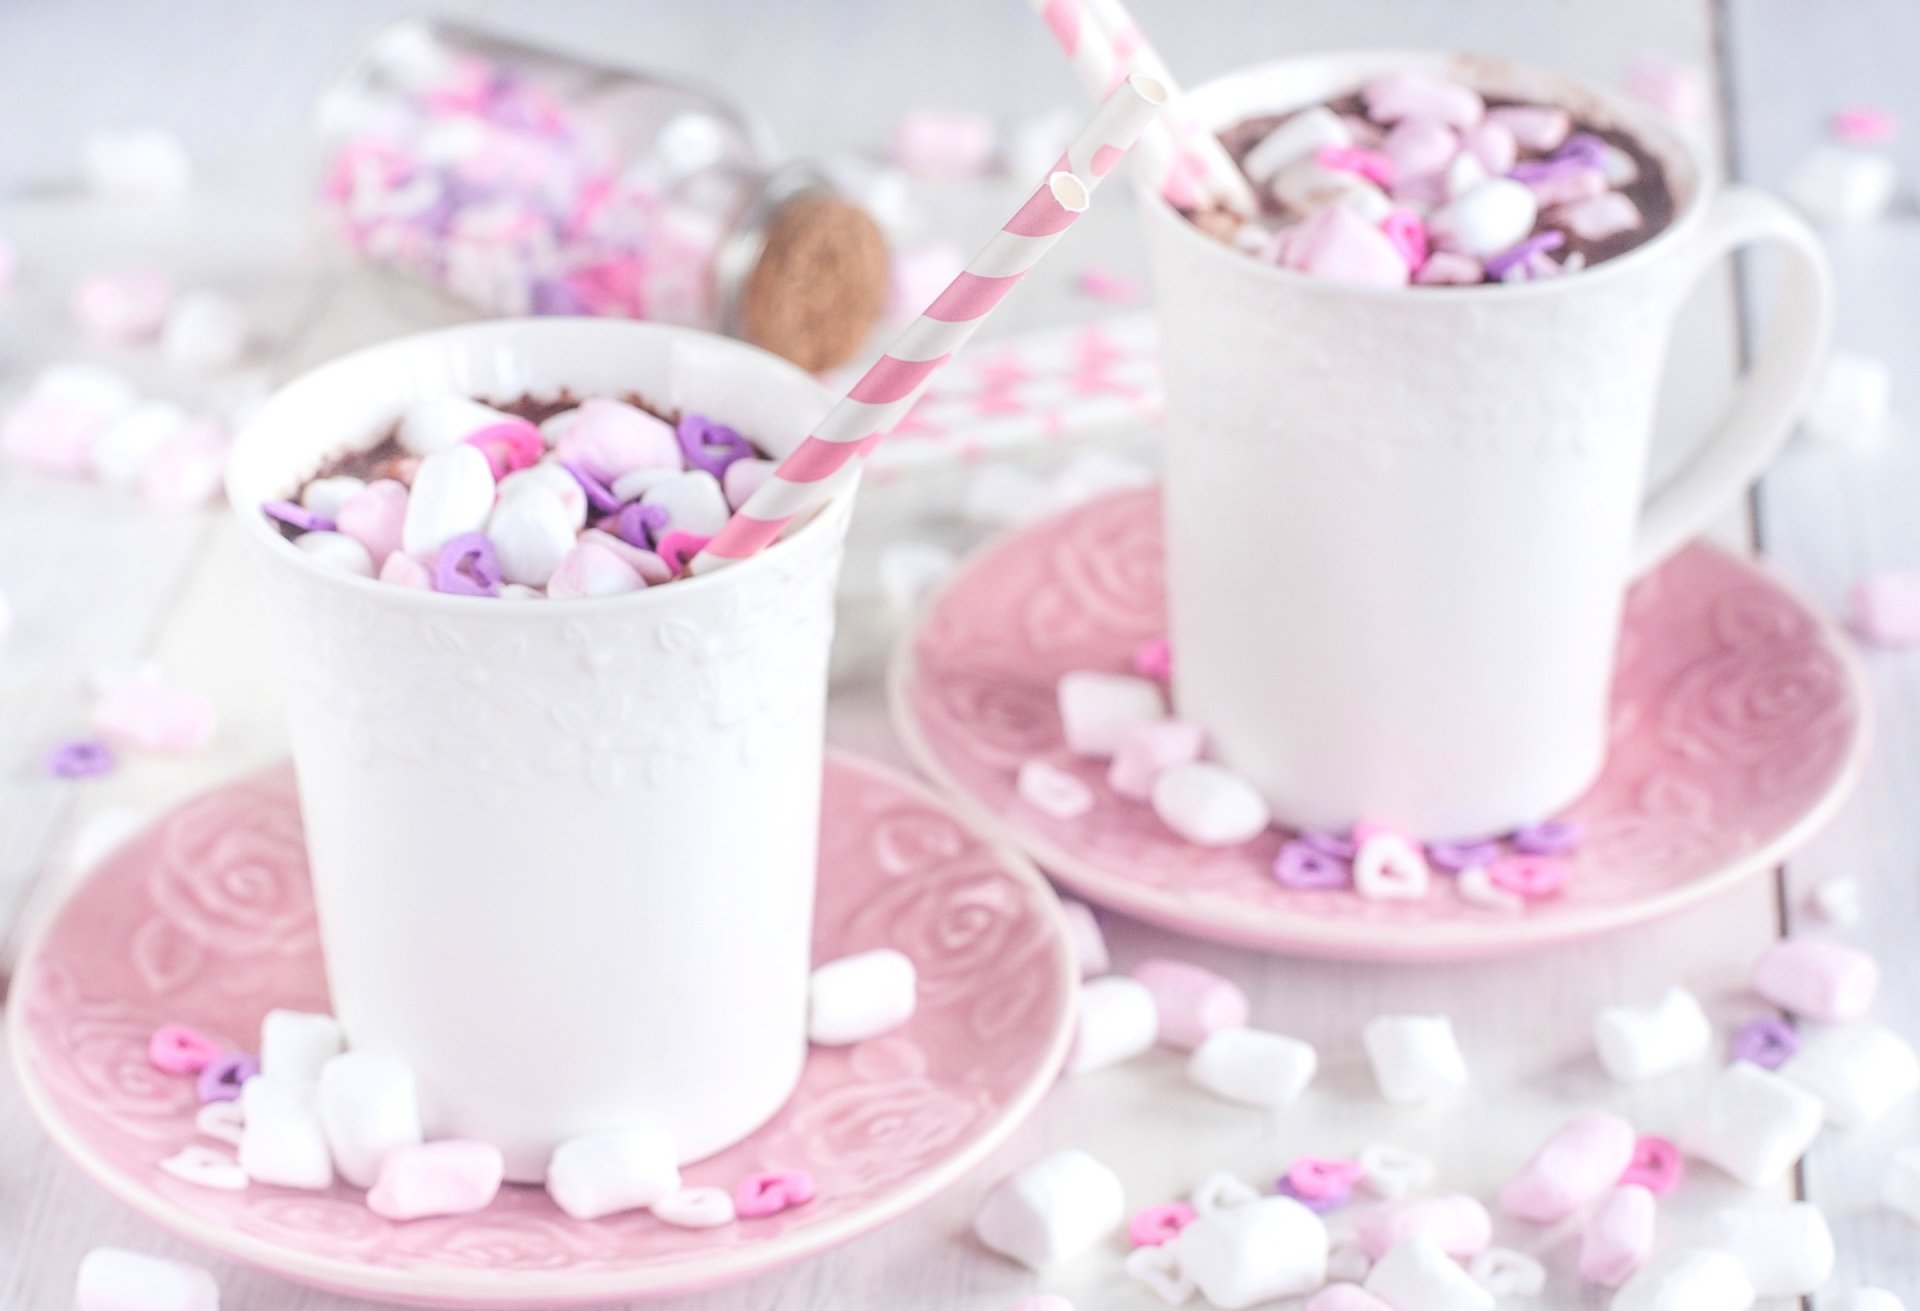 Food - Hot Chocolate  Cup Candy Marshmallow Wallpaper